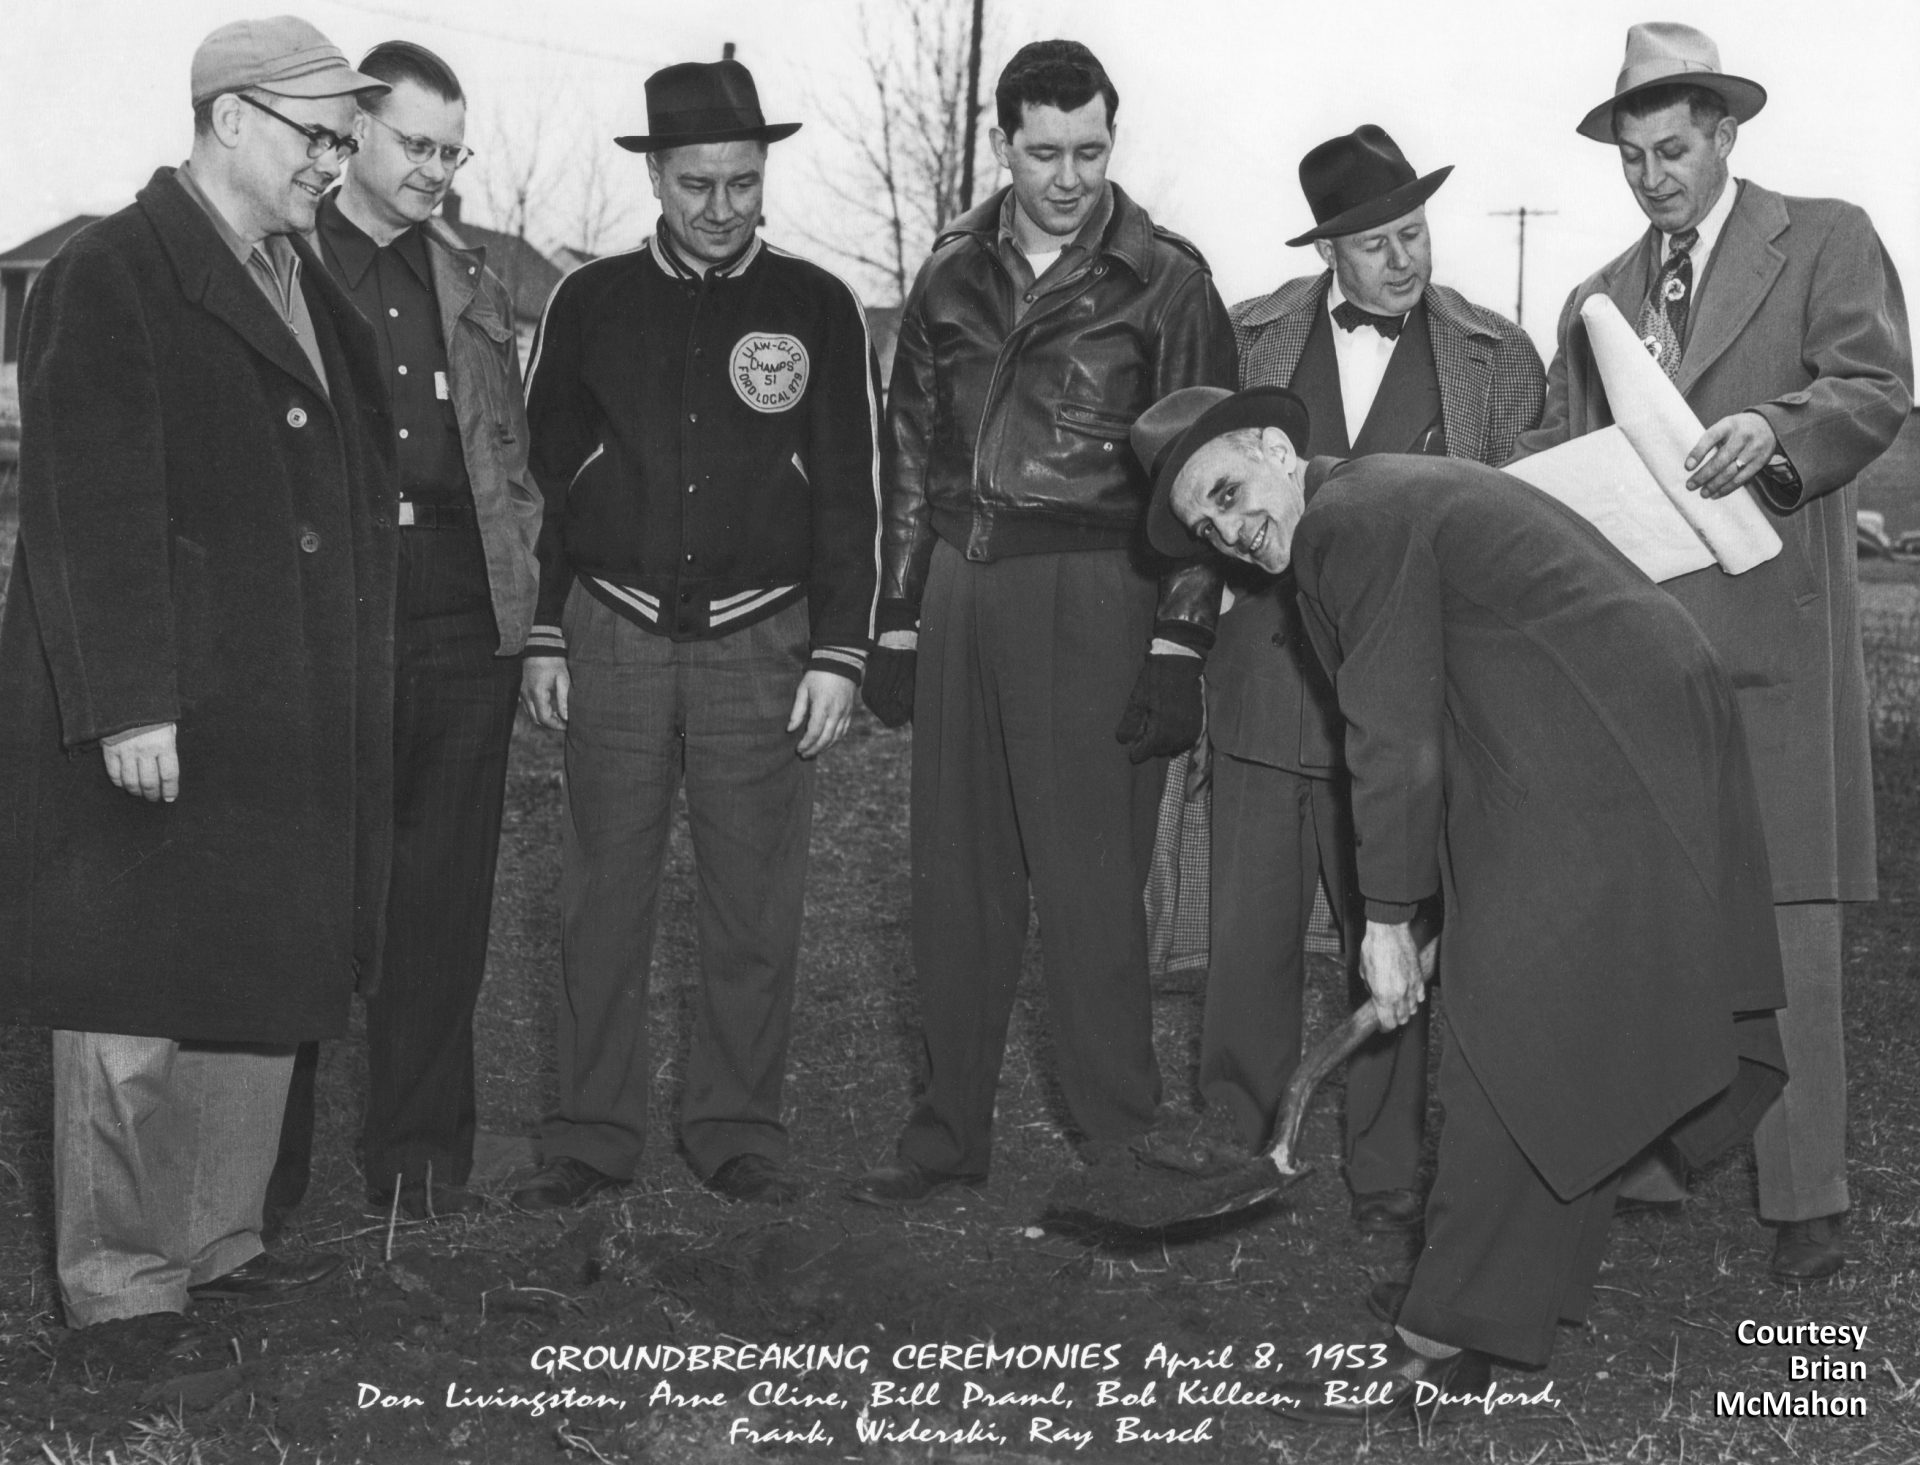 Leaders of the United Auto Workers Local 879 broke ground on the new UAW Union Hall on Ford Parkway in 1953. The building was later renamed in honor of Ray Busch, one of the early presidents of UAW Local 879. The site is currently occupied by Erik's Bike Shop. Courtesy Brian McMahon